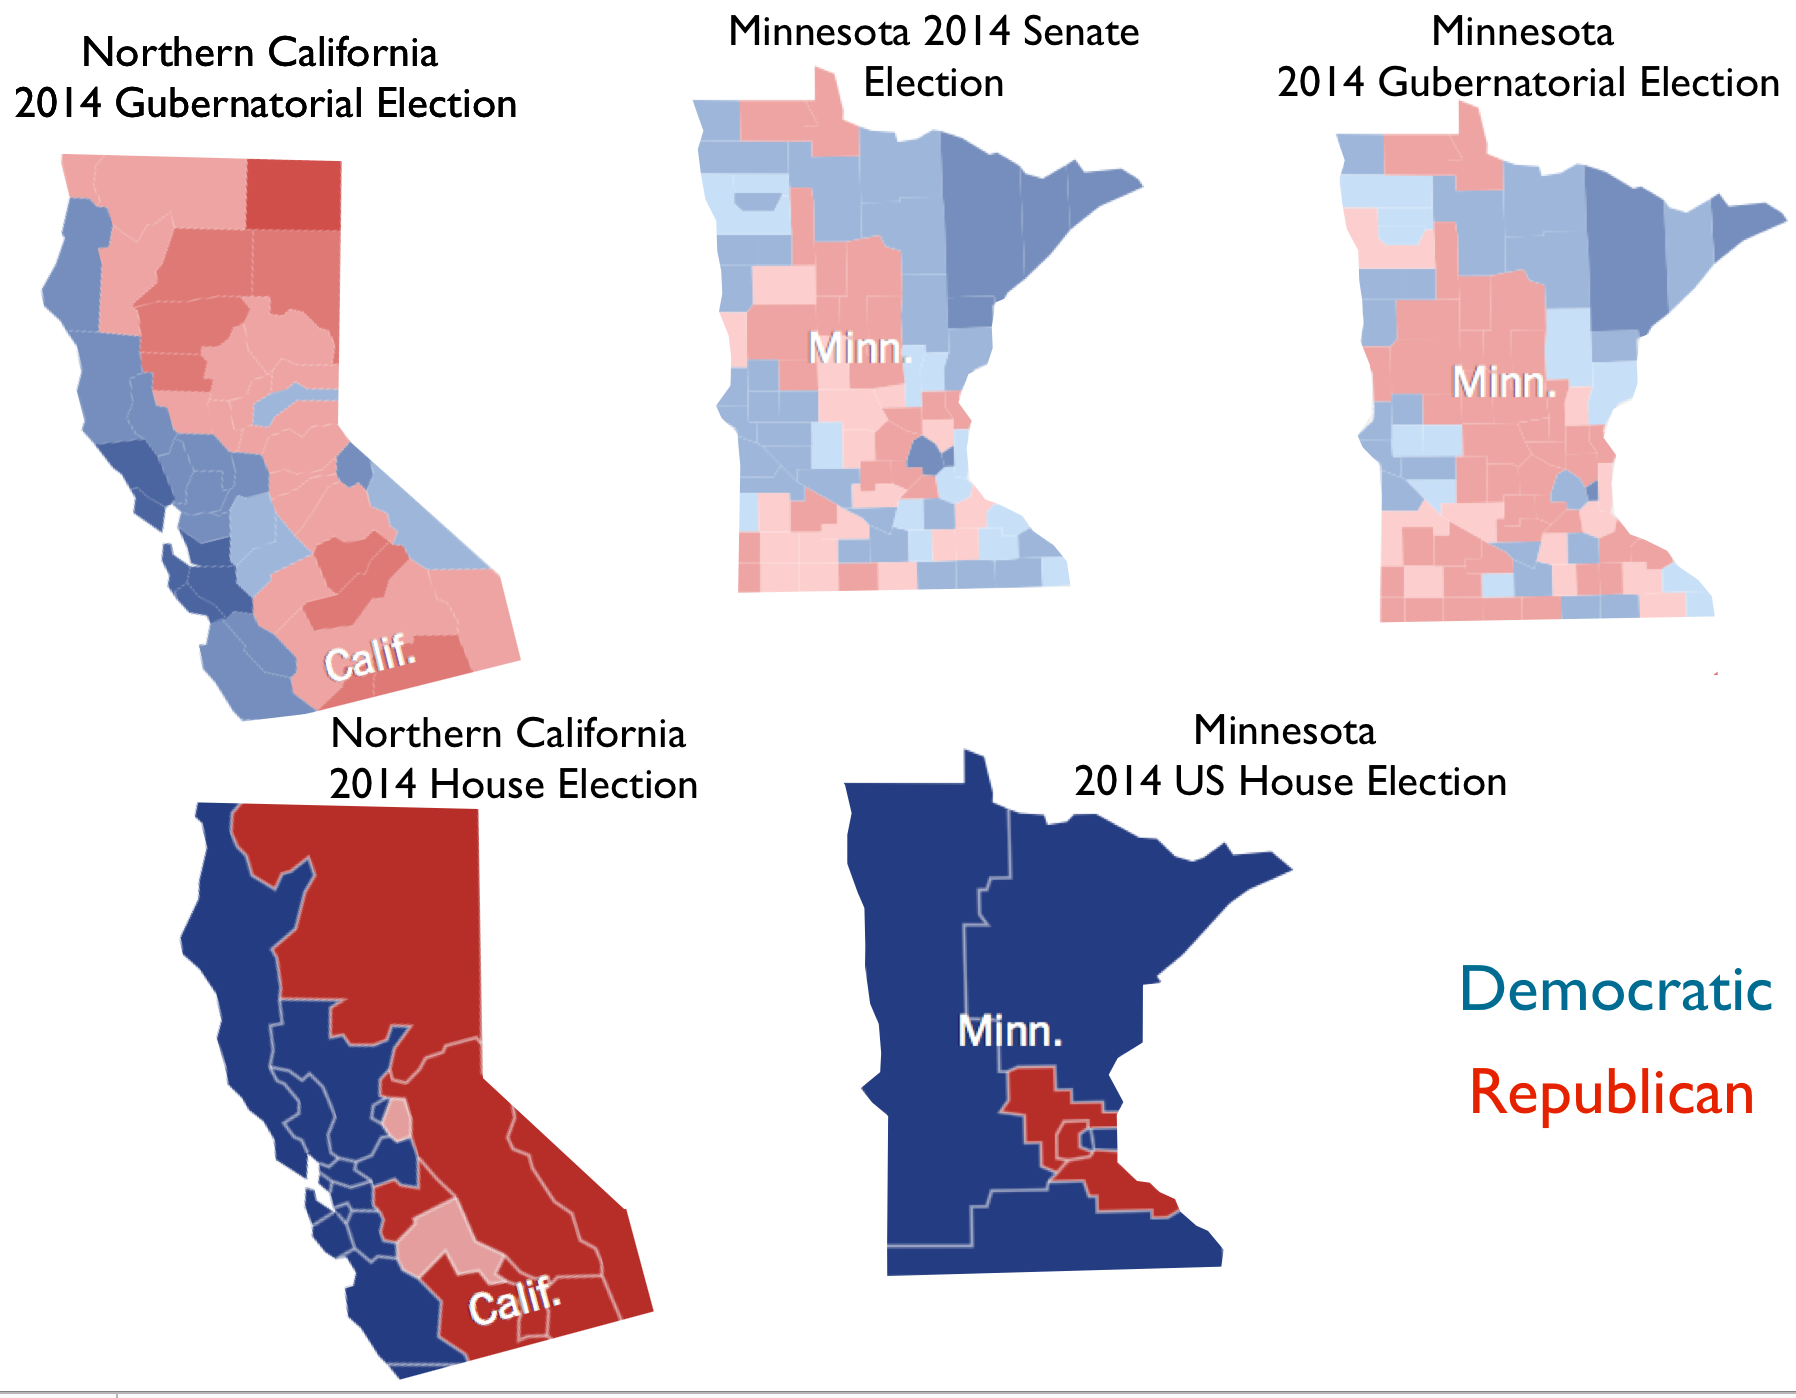 Minnesota And Northern California Political Twins Or Political - Political leanings map us